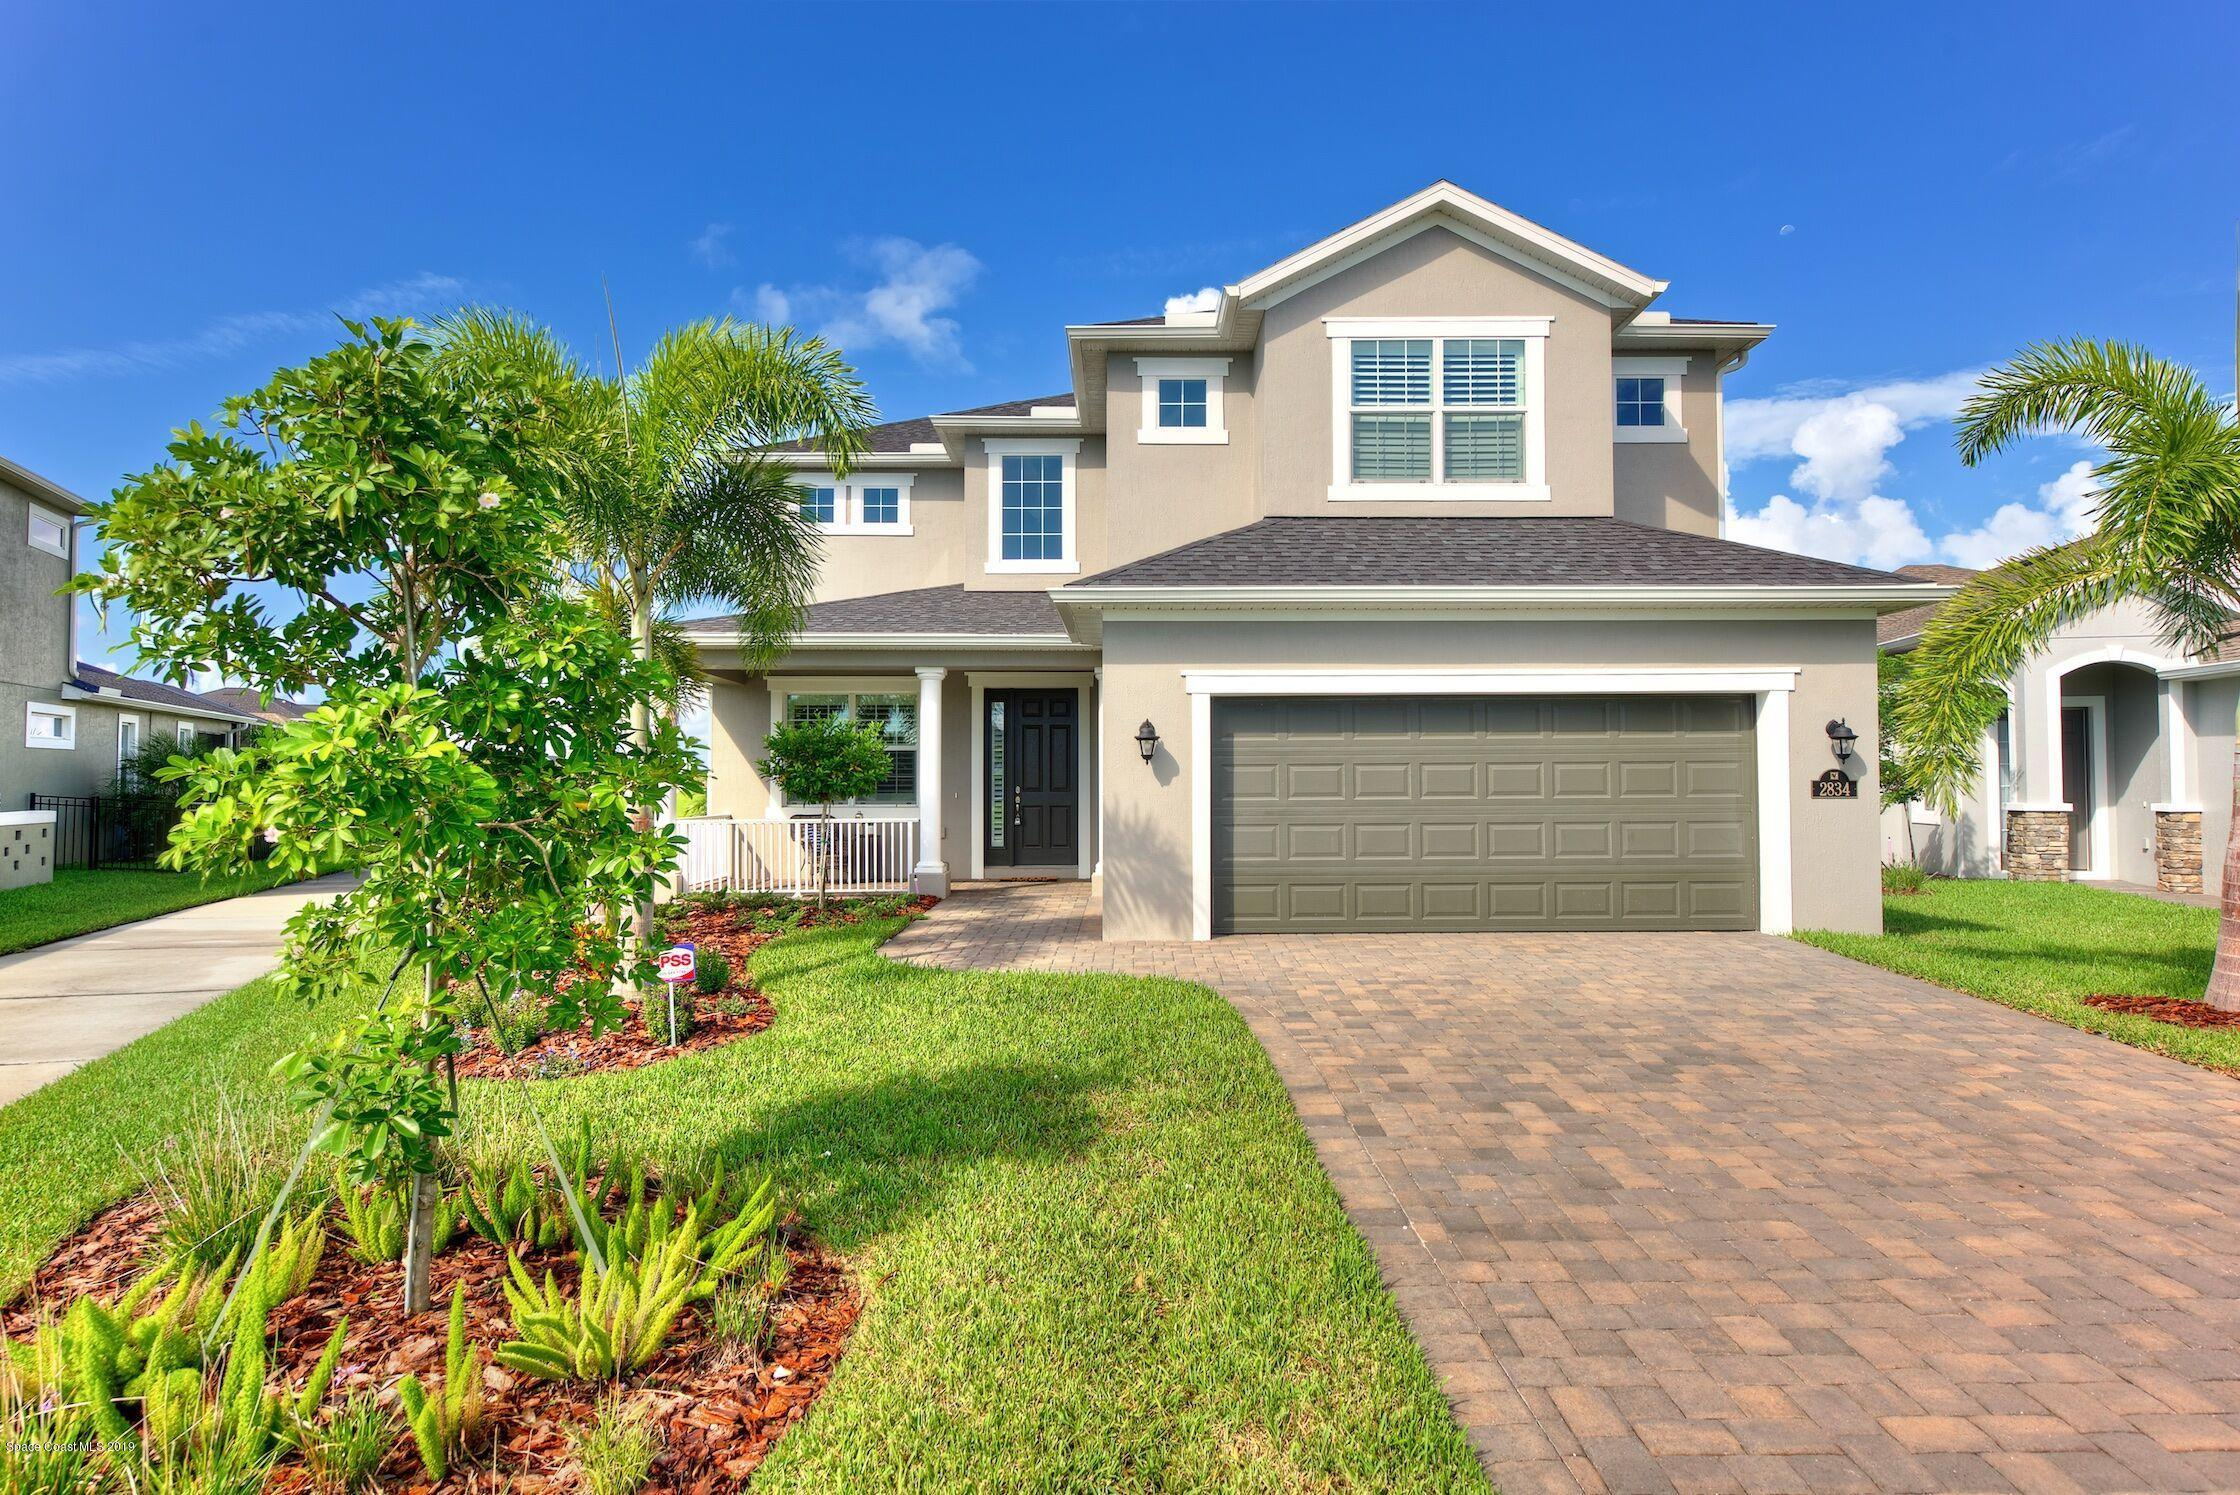 Single Family Homes for Sale at 2834 Amethyst Melbourne, Florida 32940 United States